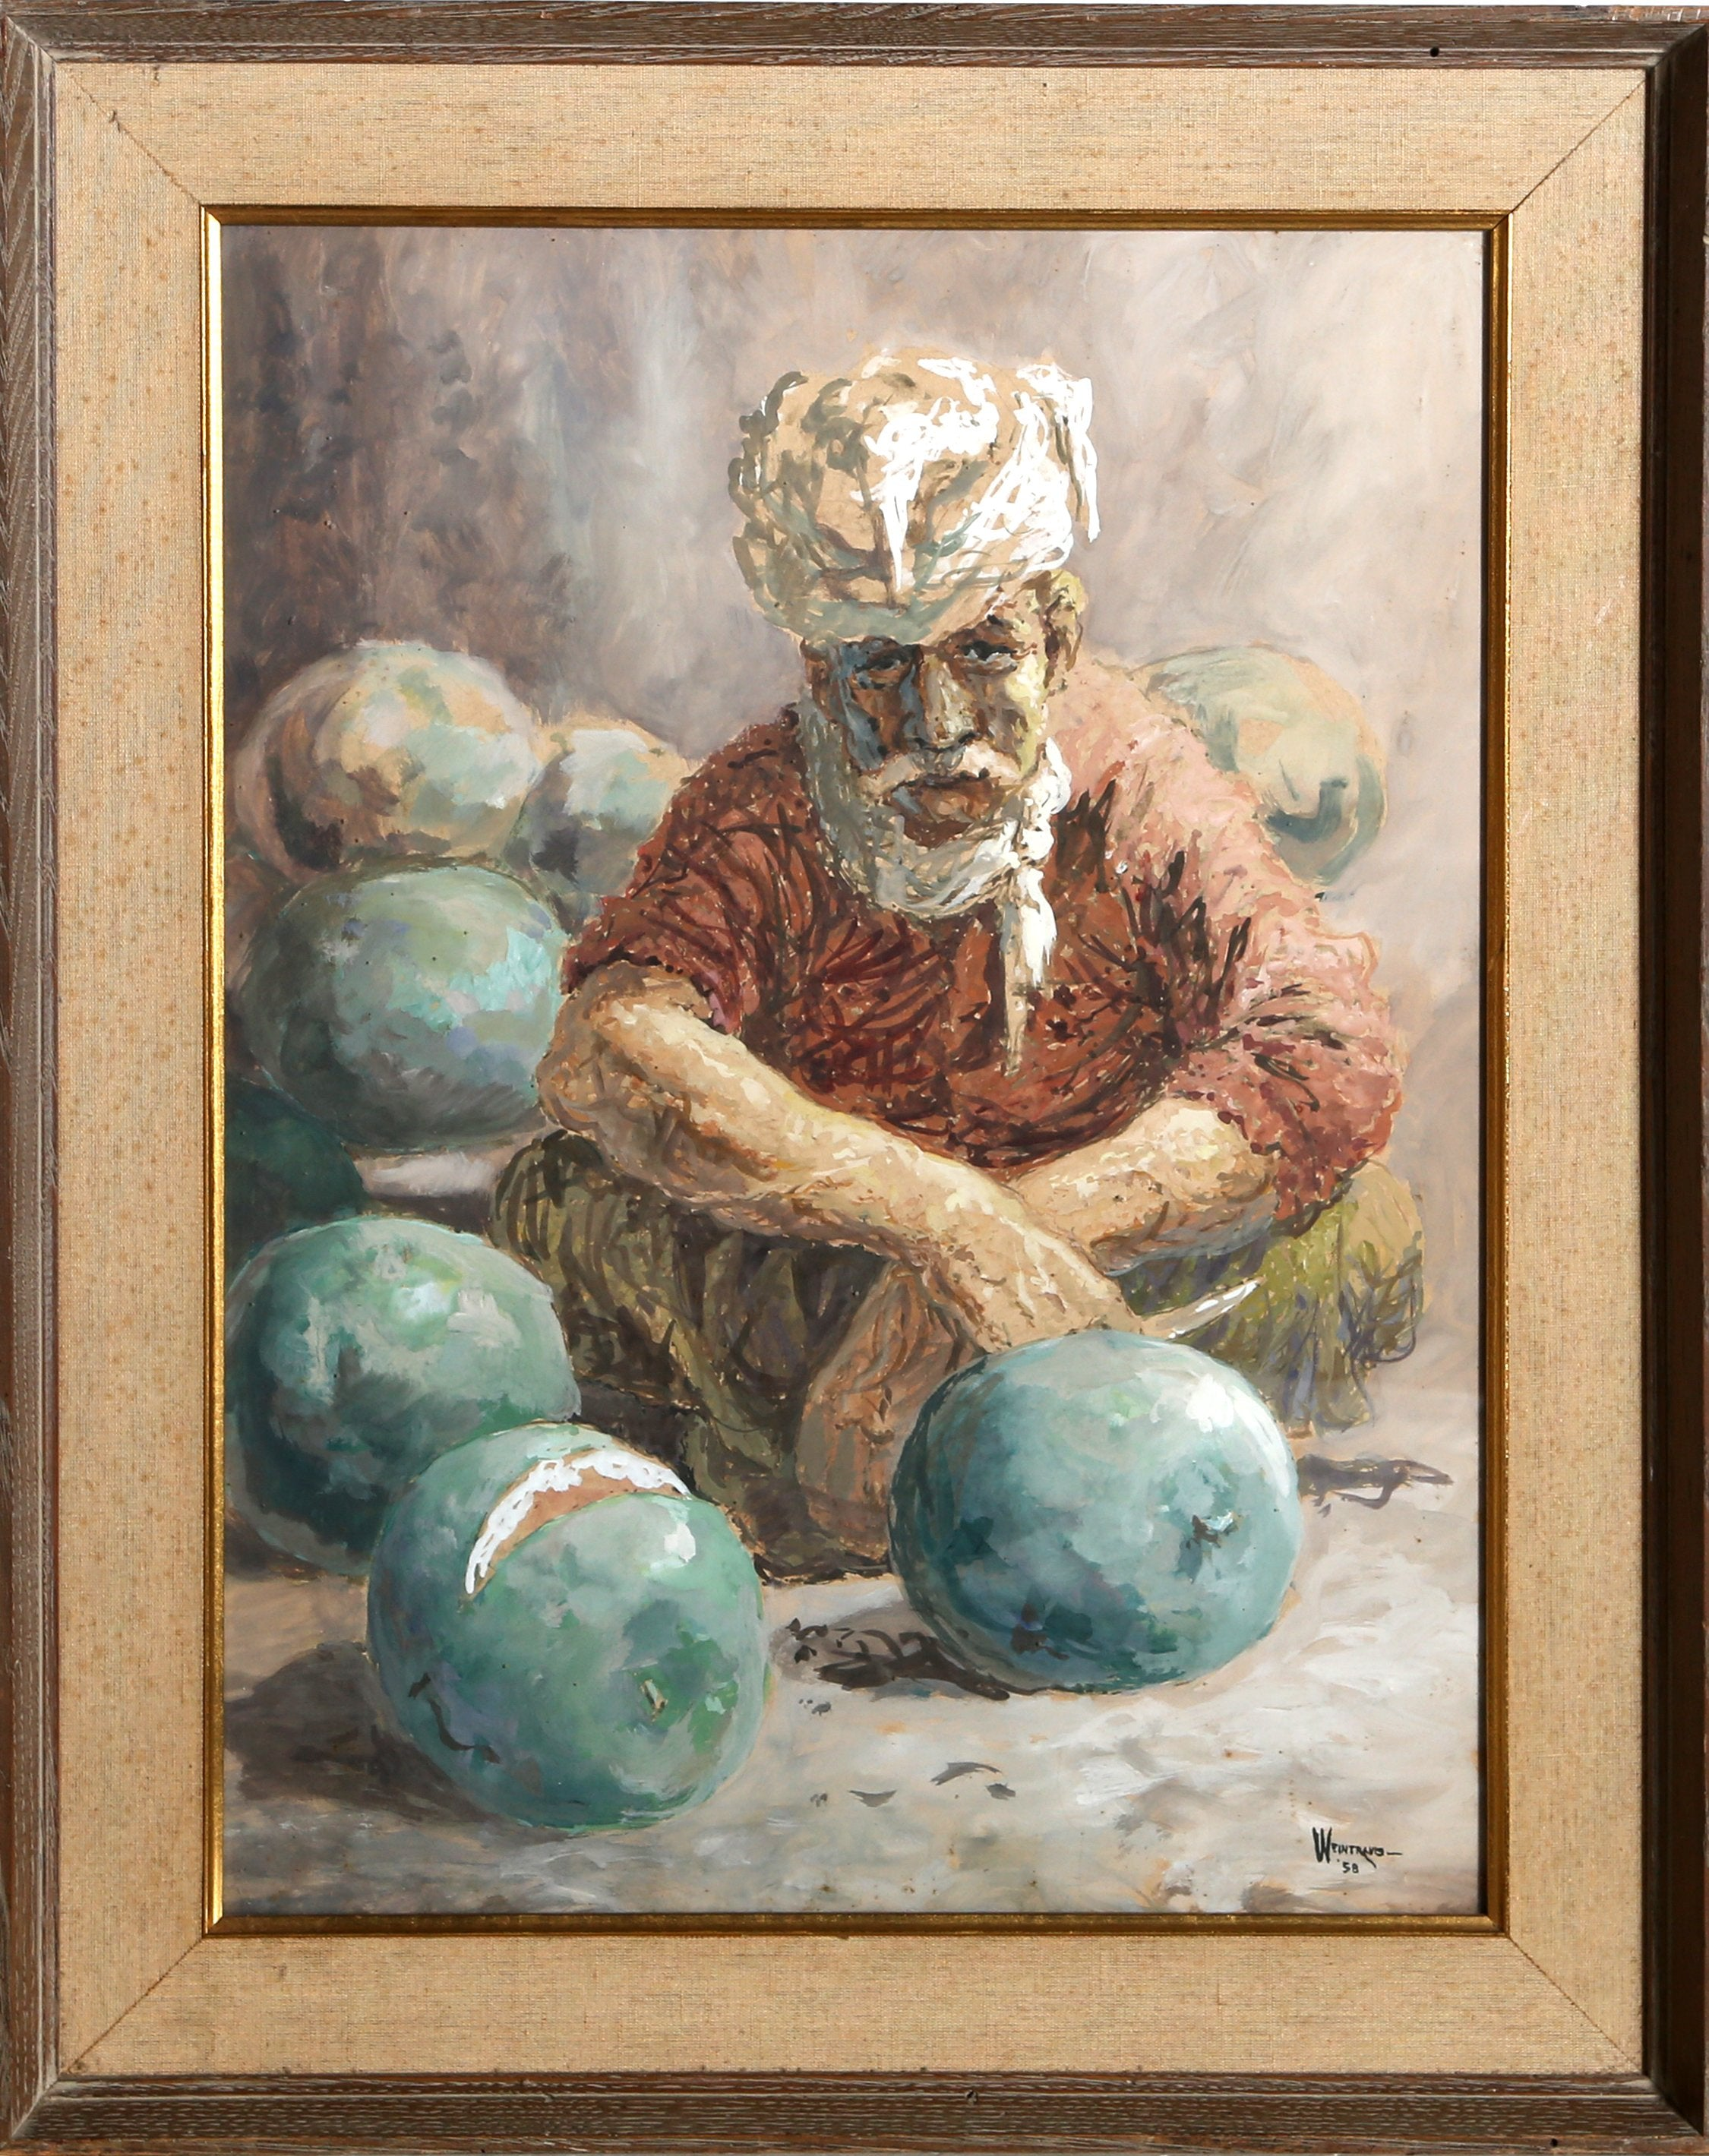 William Weintraub, Seated Man with Melons Gouache - RoGallery